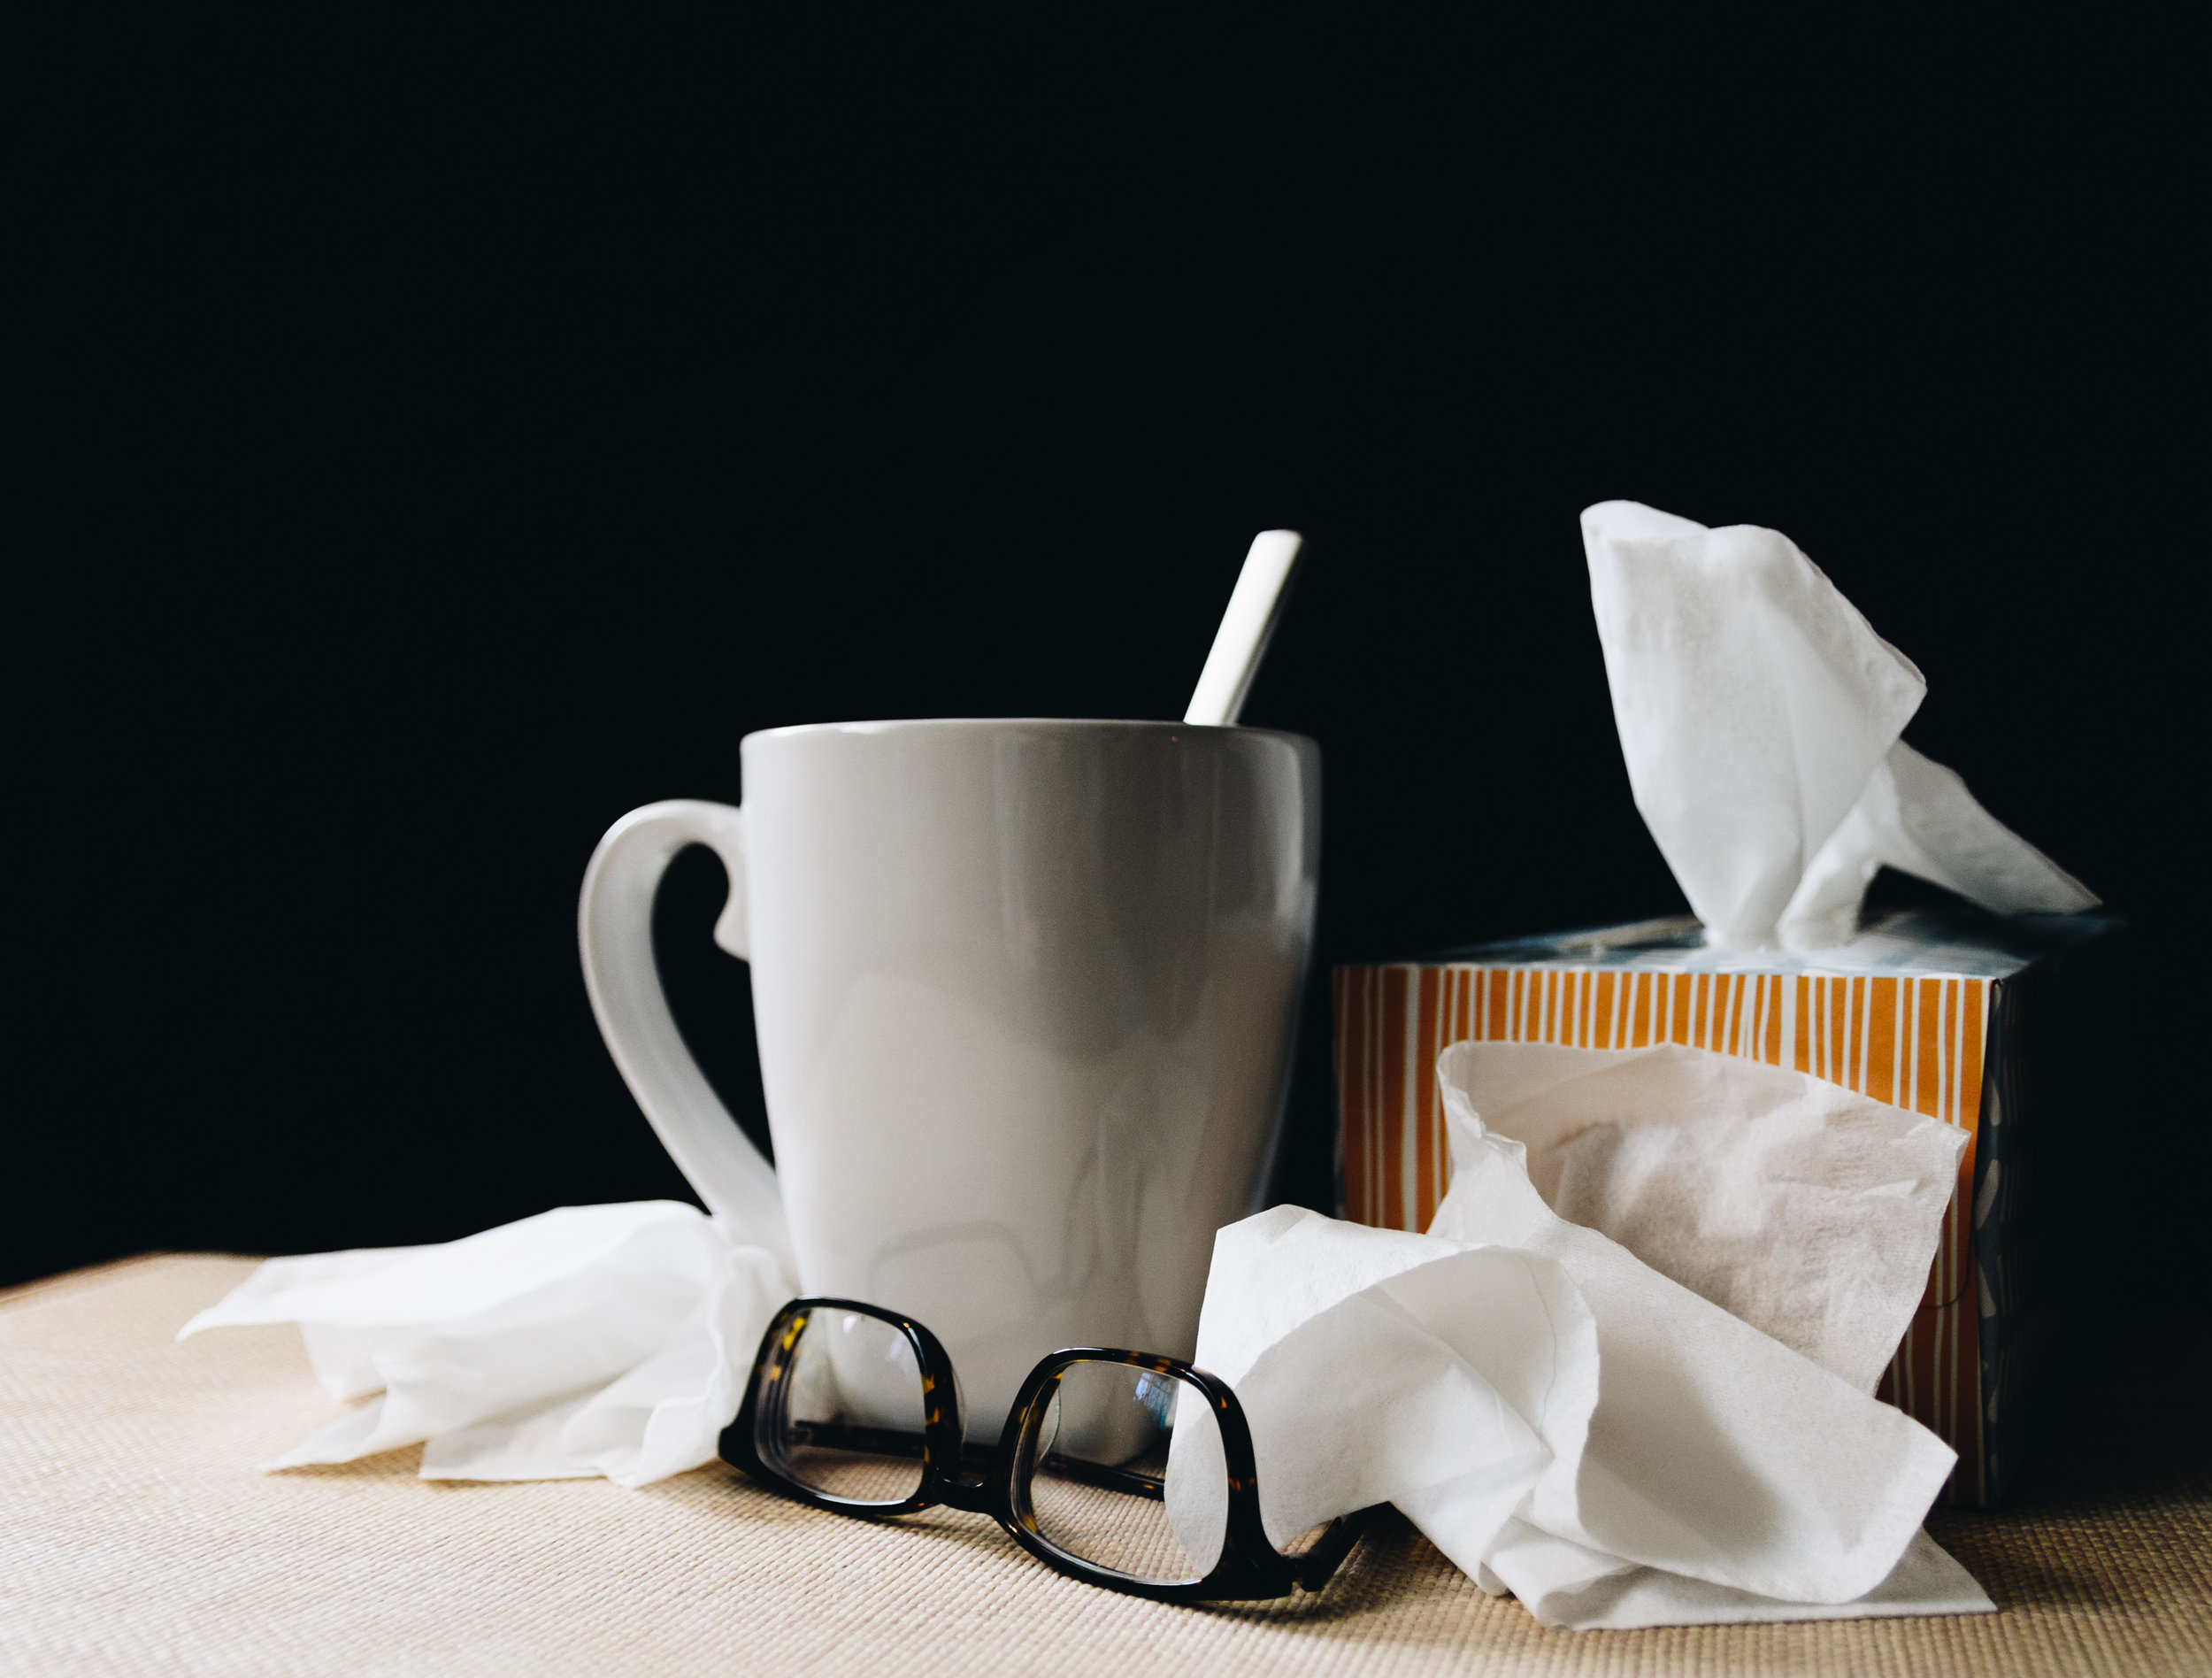 Used tissues, a box of Kleenex, and a cup of tea